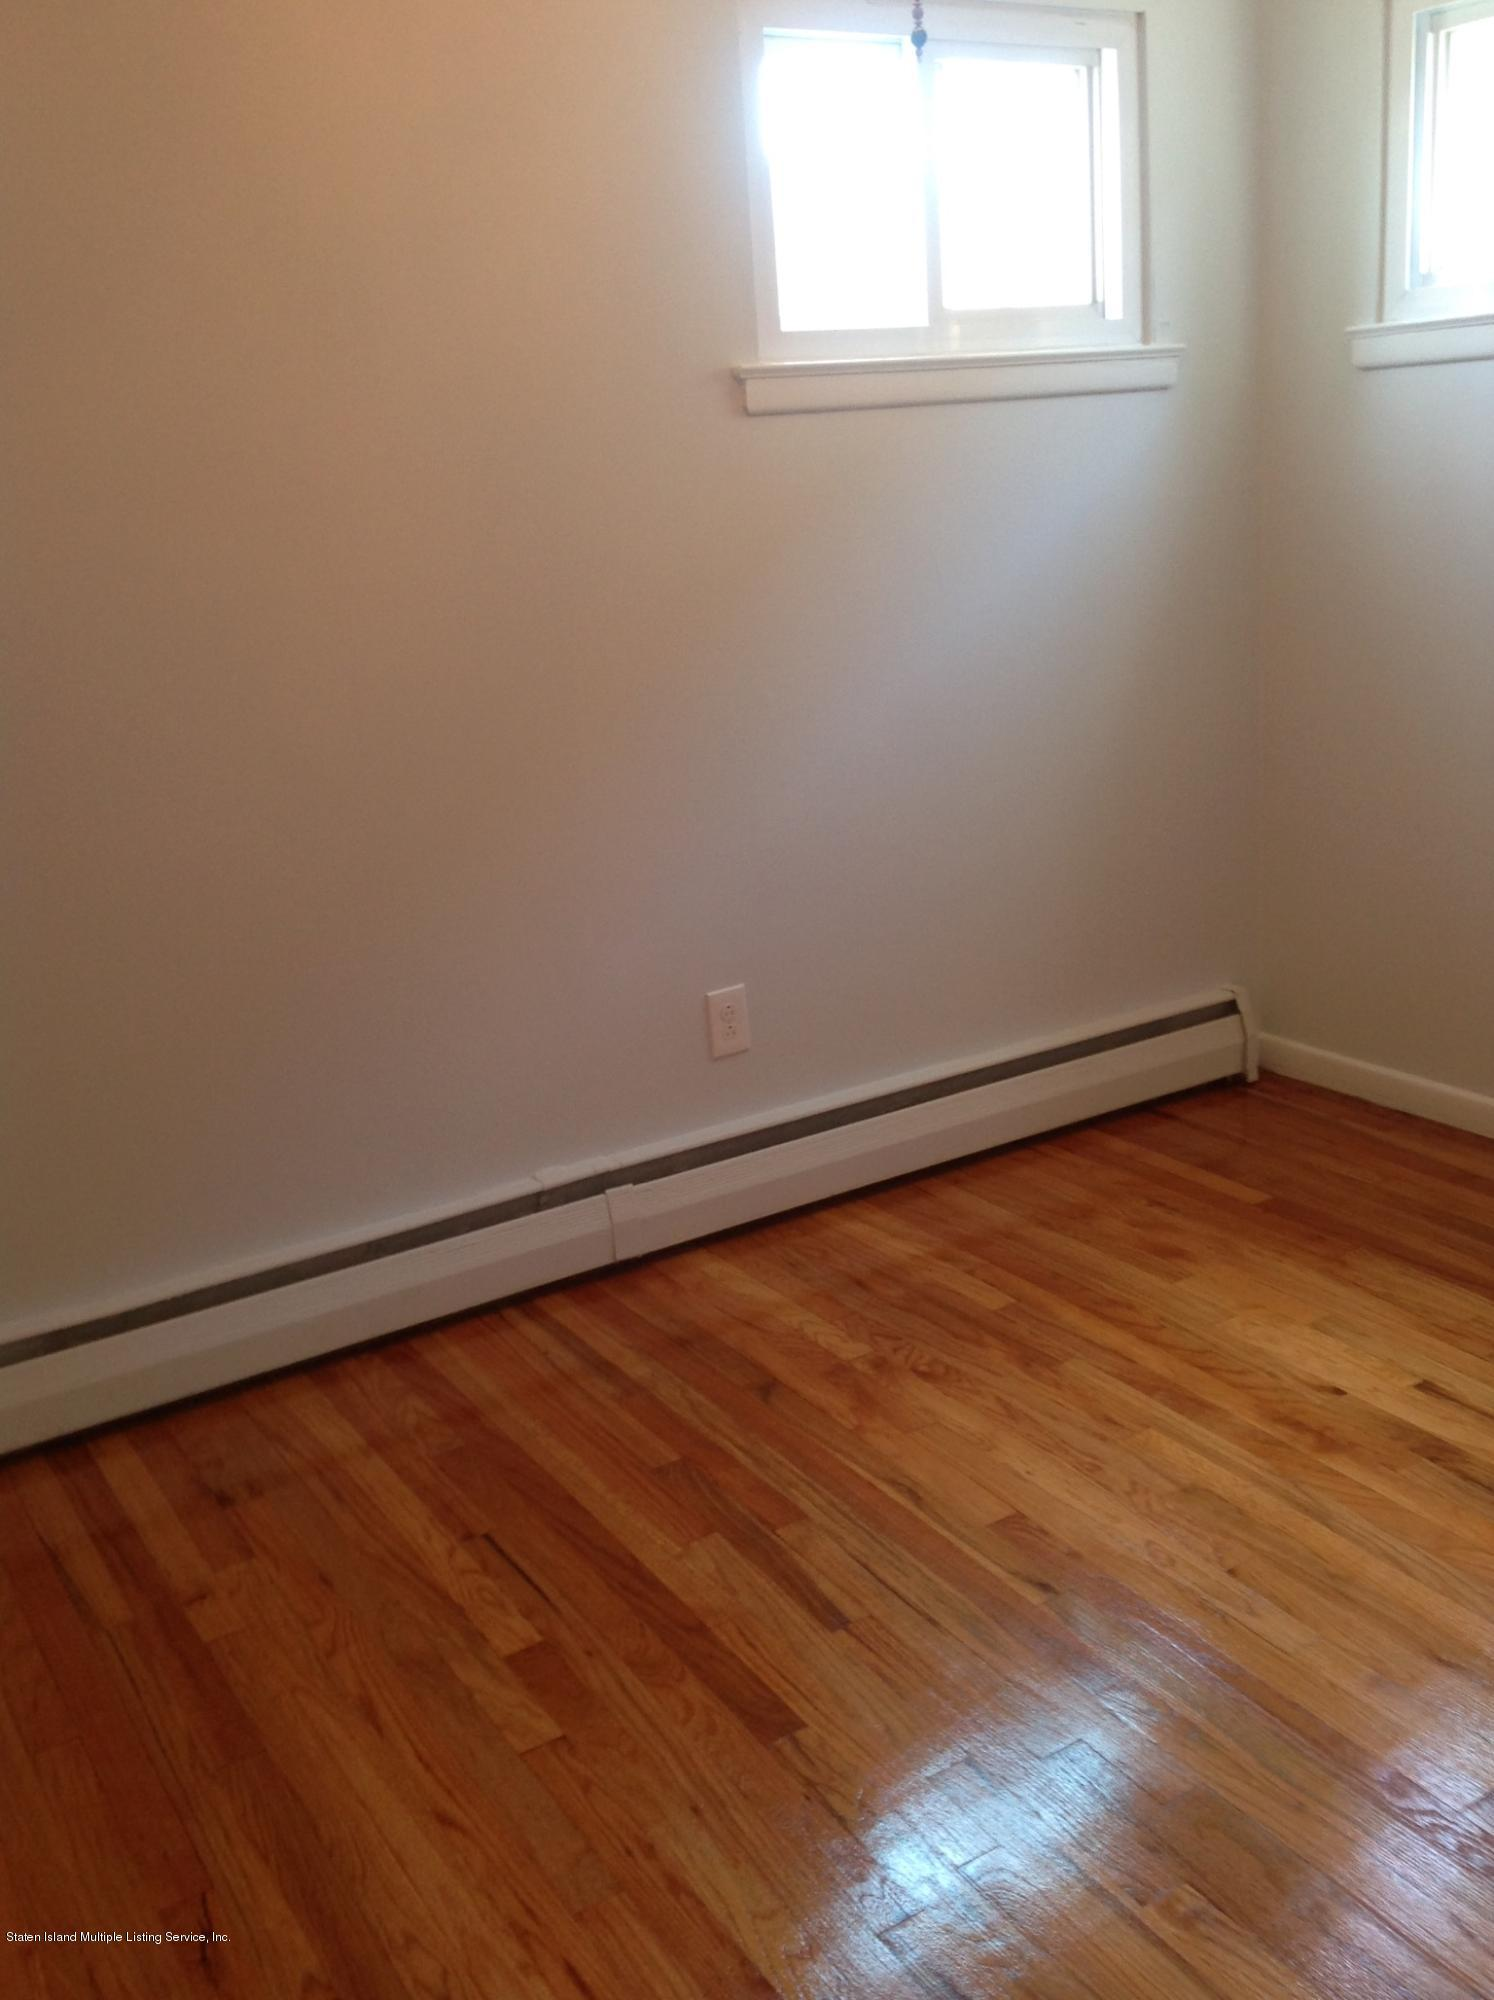 Single Family - Detached 28 Queen Street  Staten Island, NY 10314, MLS-1148779-17